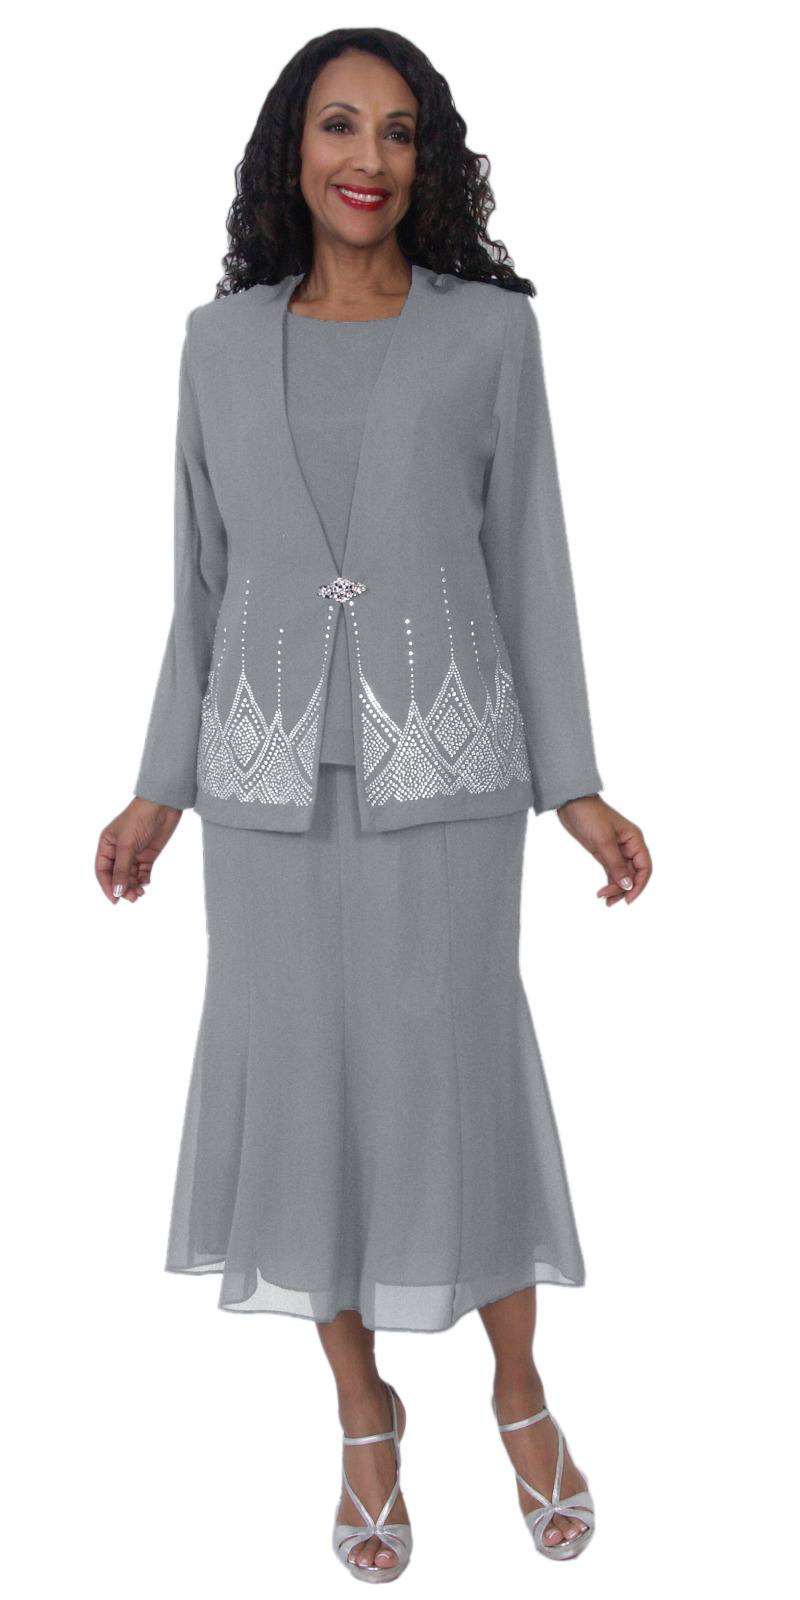 66785484154 ... Hosanna 5115 Plus Size 3 Piece Set Silver Tea Length Dress ...